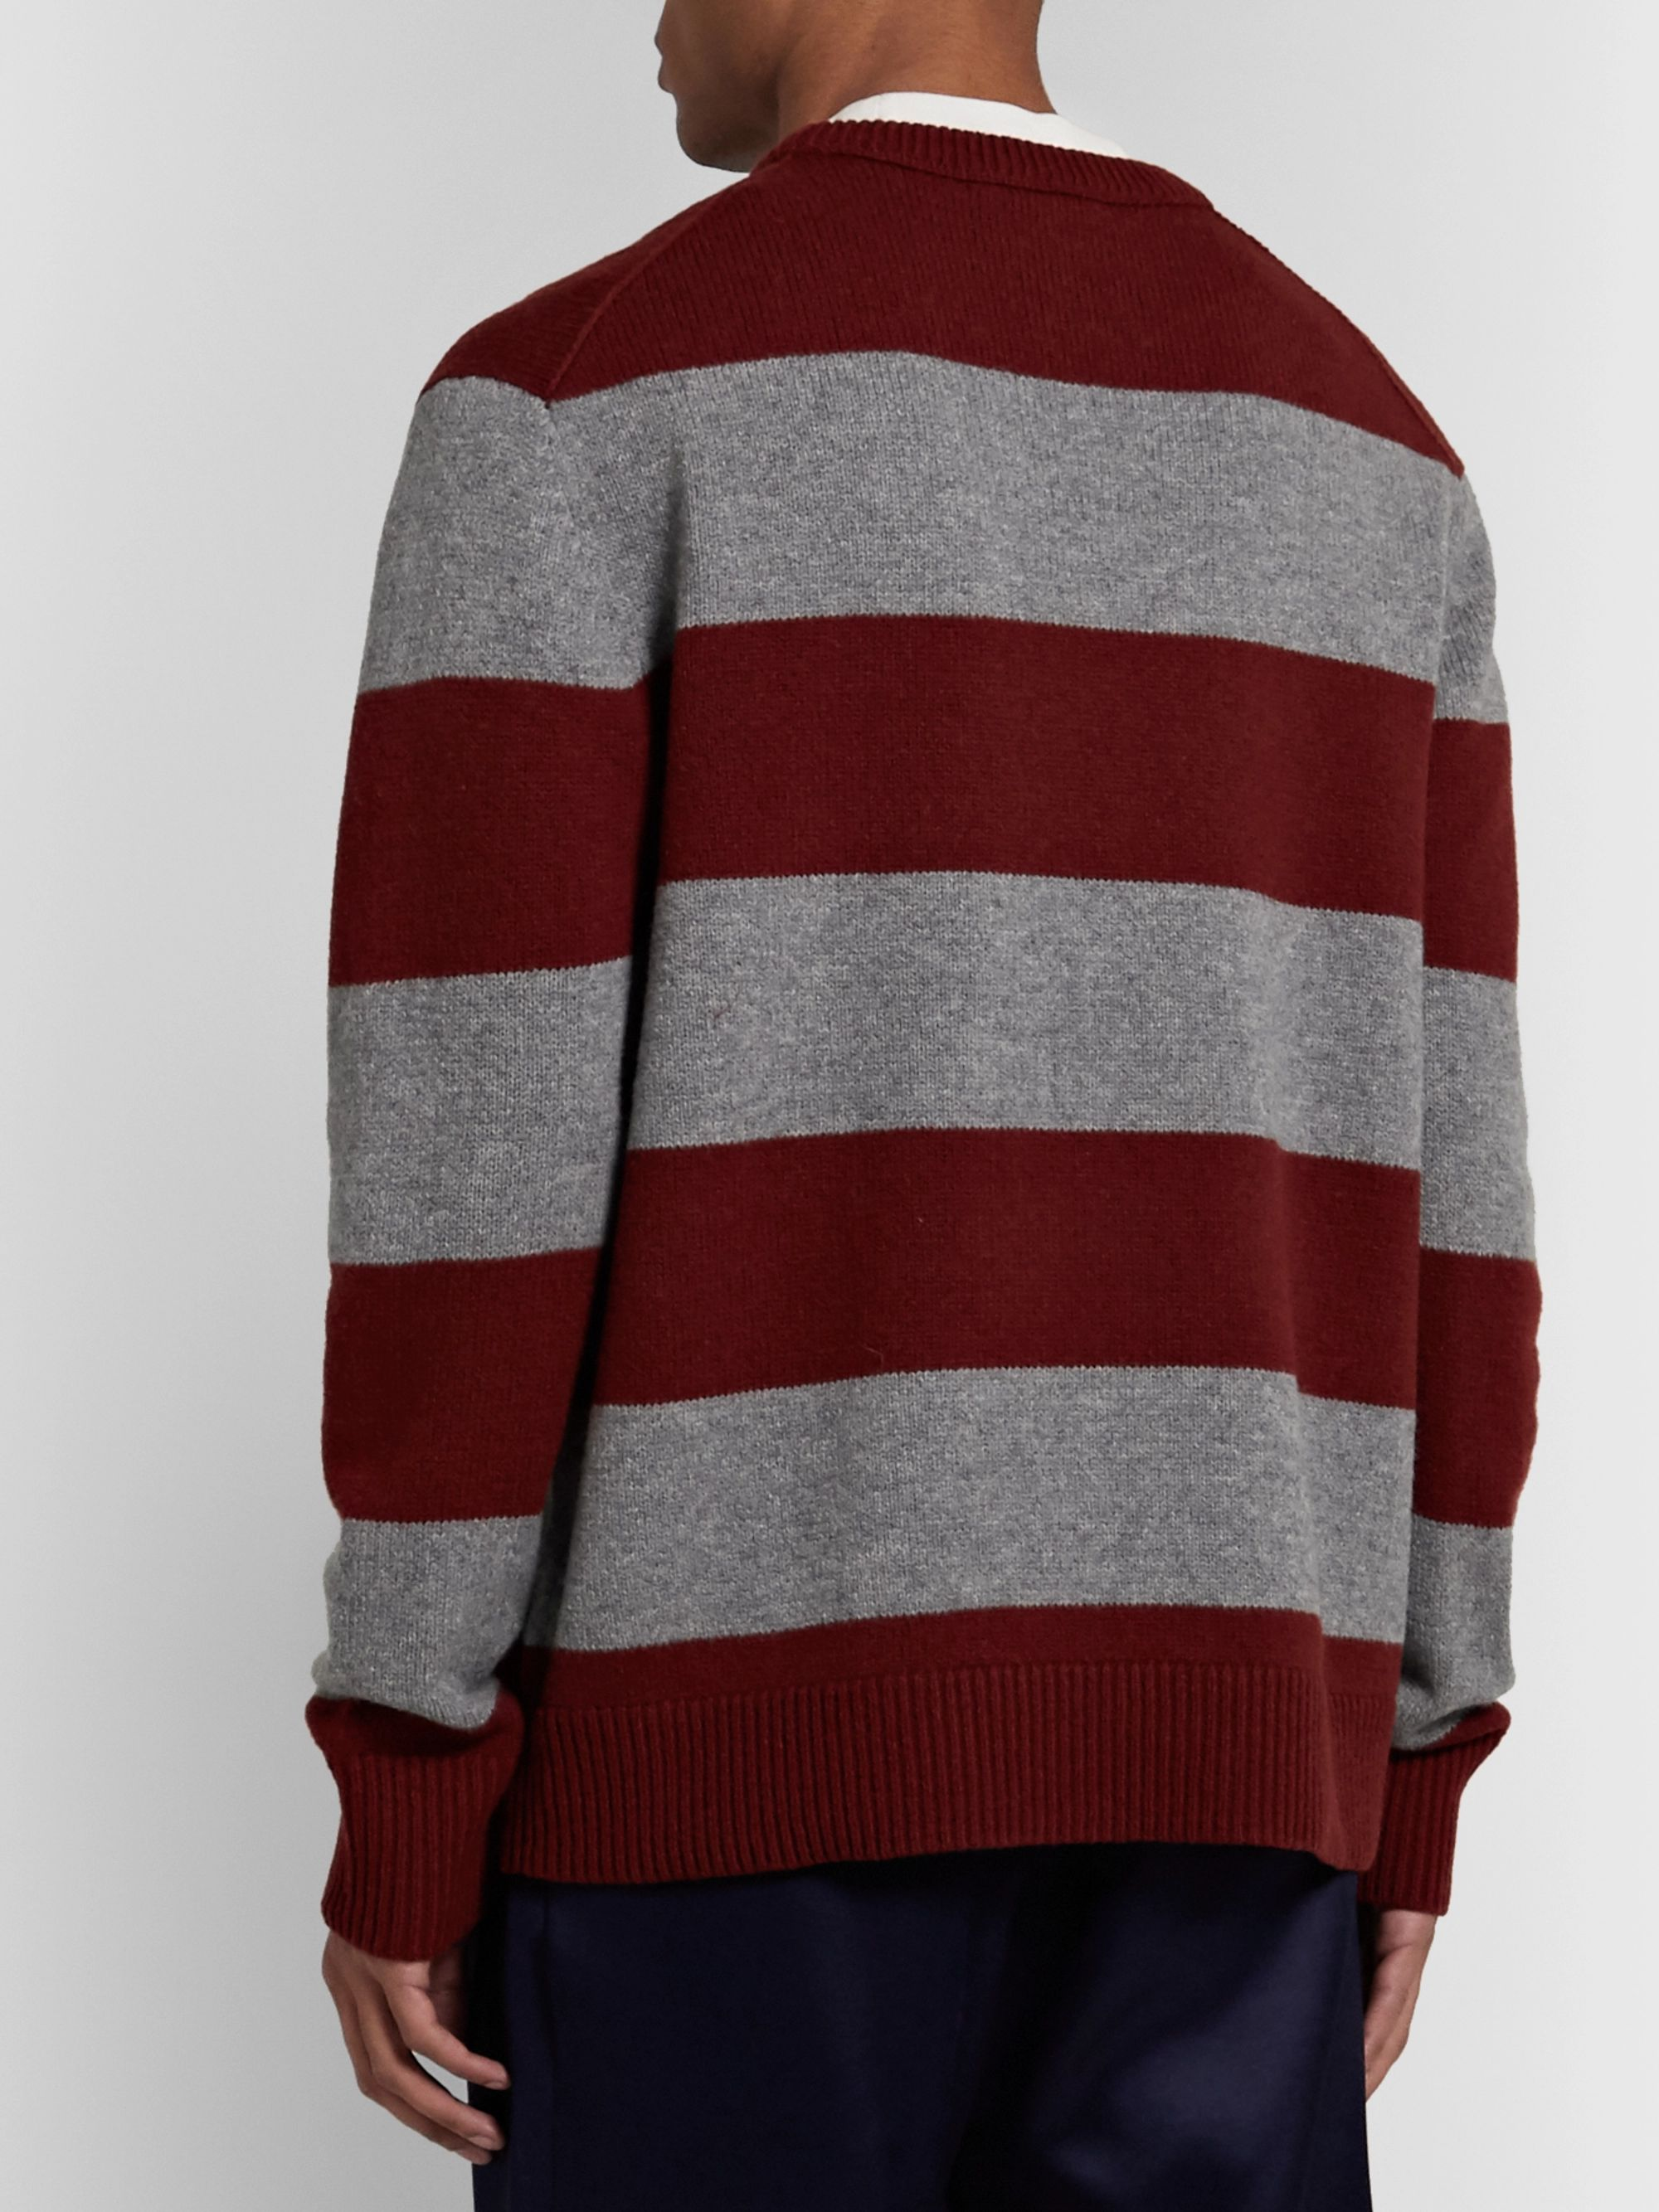 Acne Studios Logo-Appliquéd Striped Wool Sweater